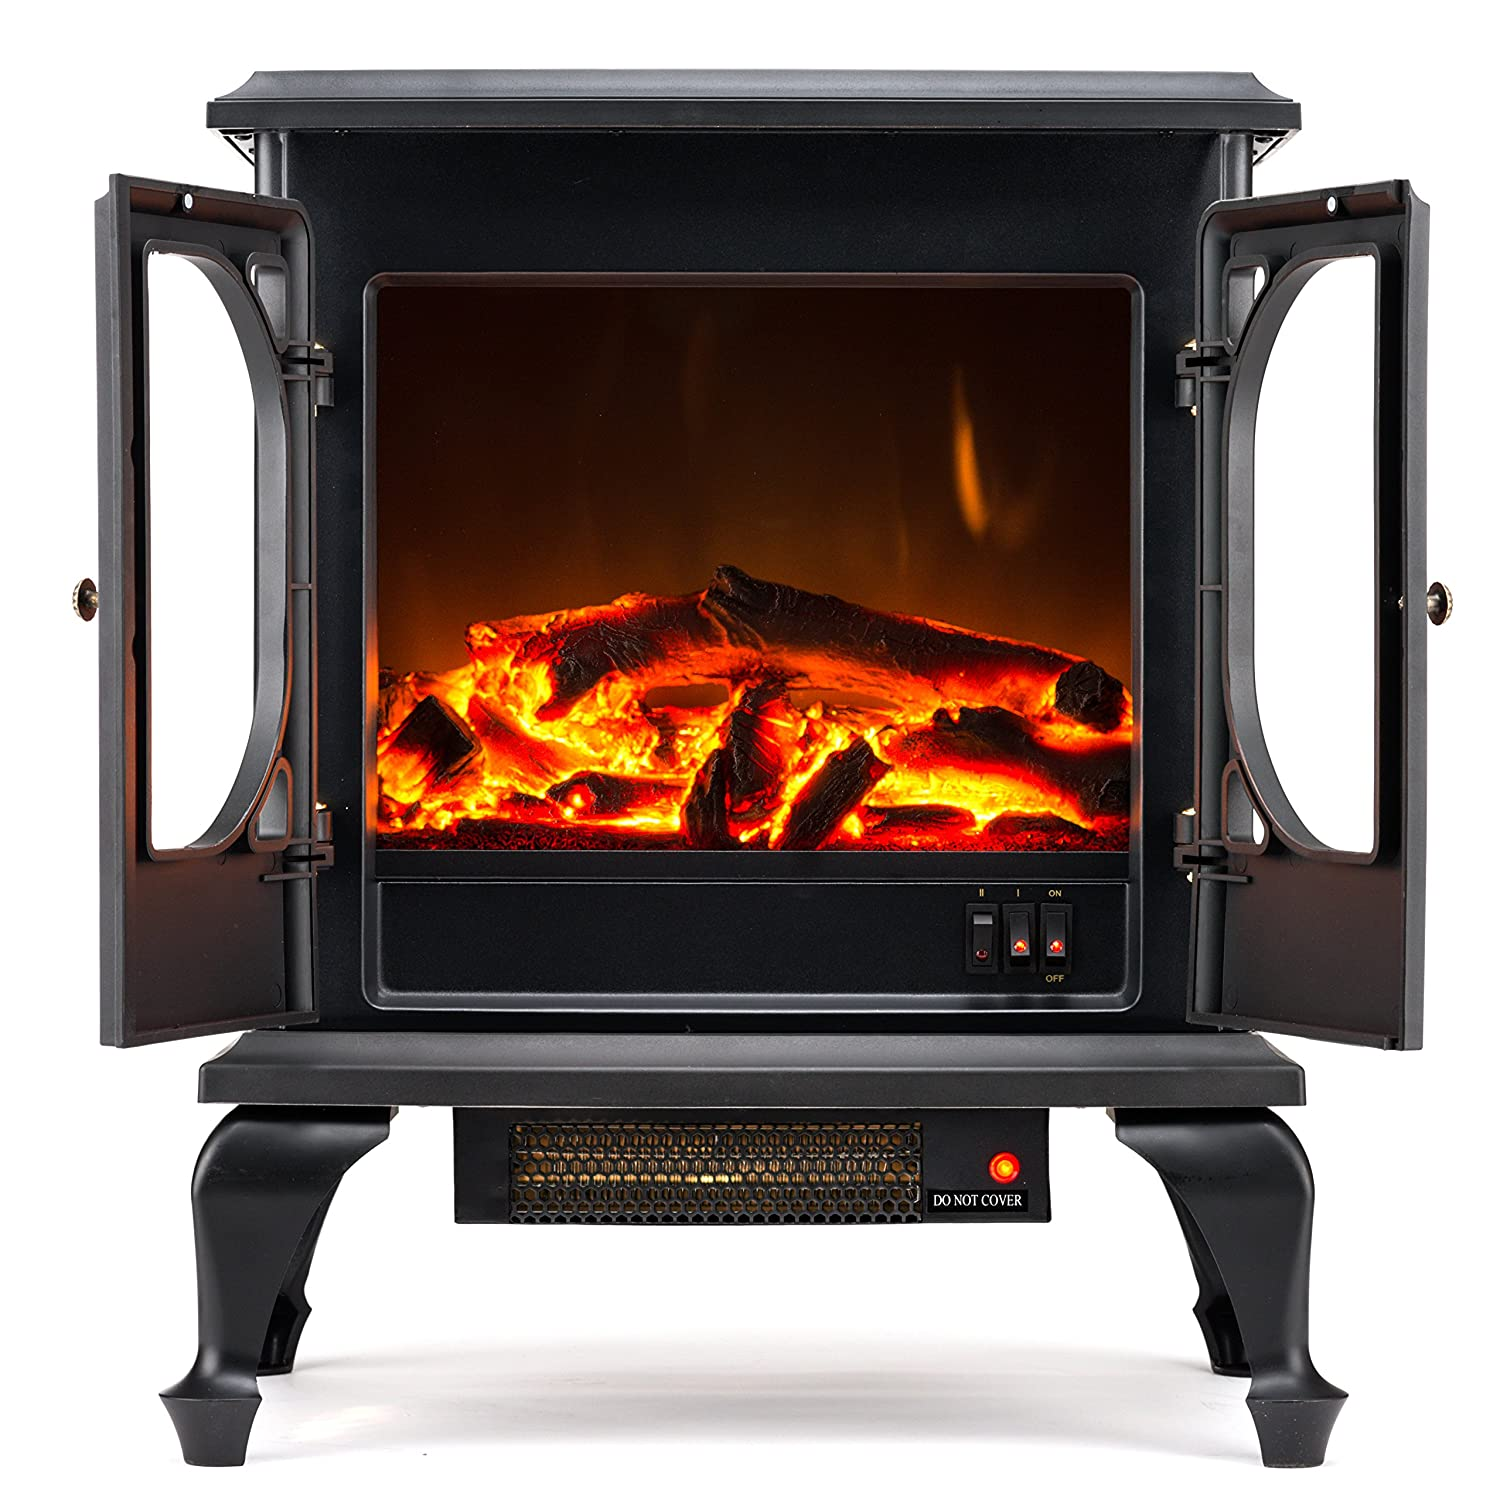 Amazon.com: Townsend Free Standing Electric Fireplace Stove - 24 ...